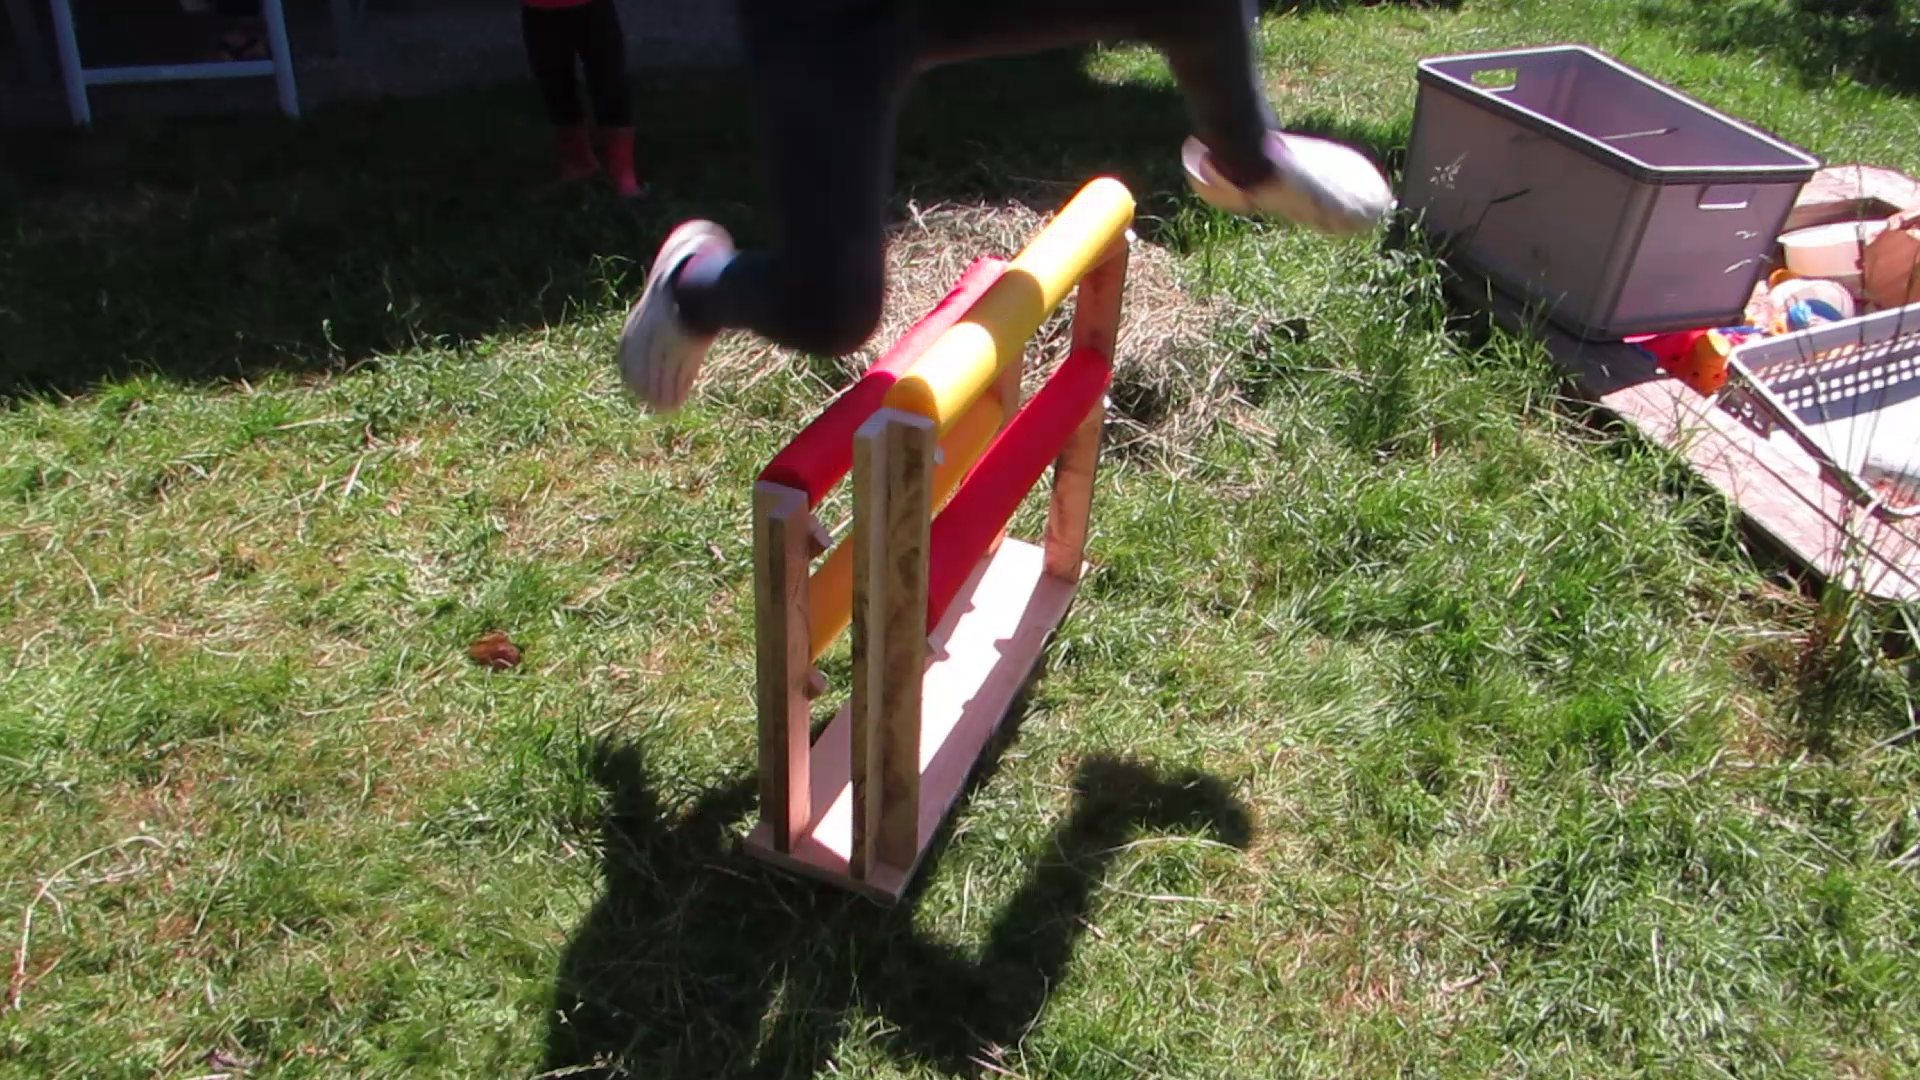 Kid jumps over garden obstacle.